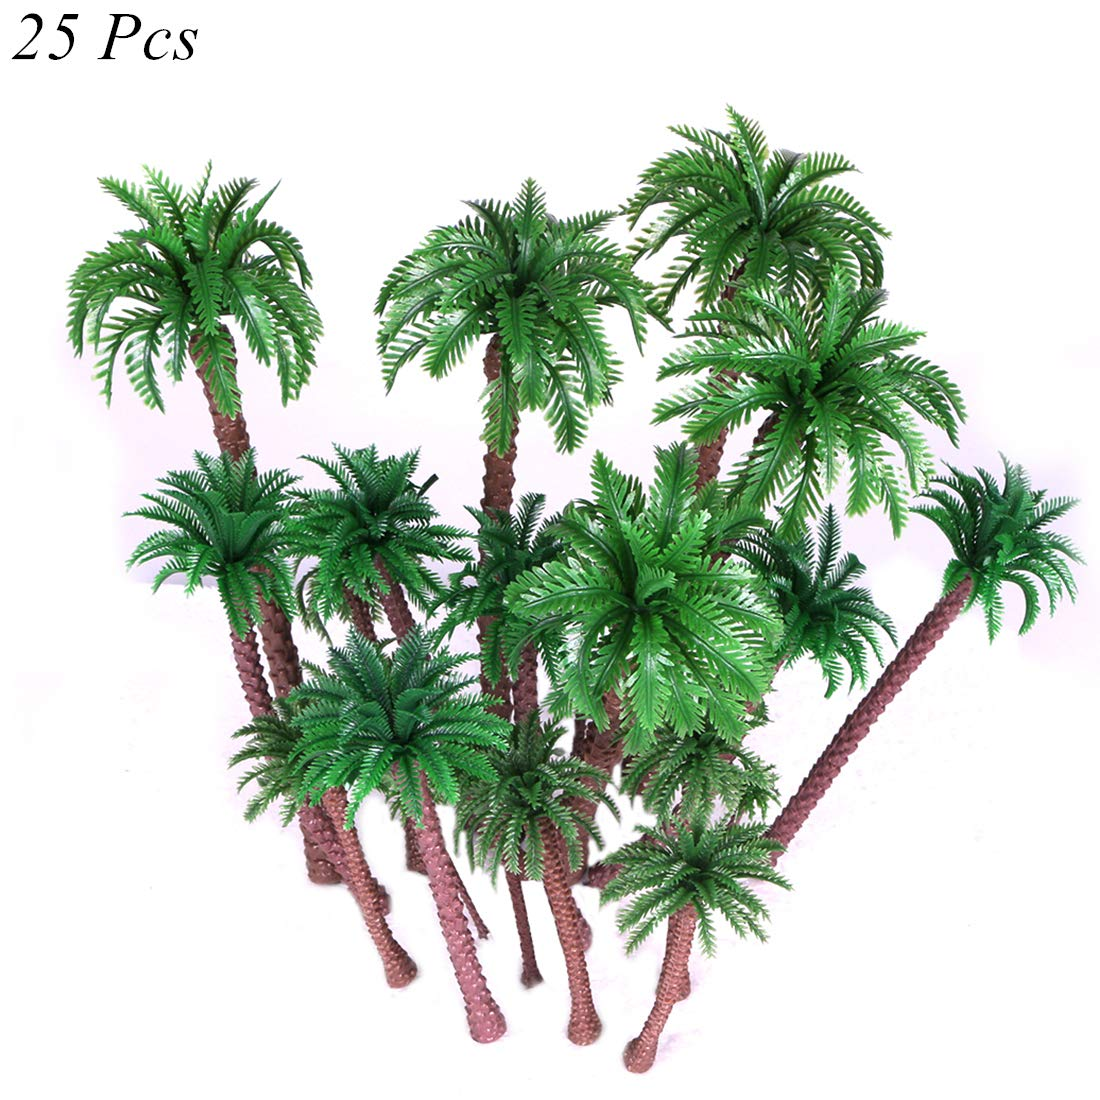 Ymeibe 25 PCS Coconut Palm Model Trees Diorama Plastic Trees Artificial Layout Rainforest Miniature Trees Train Railways Architecture Building Model Trees Cake Topper Decoration